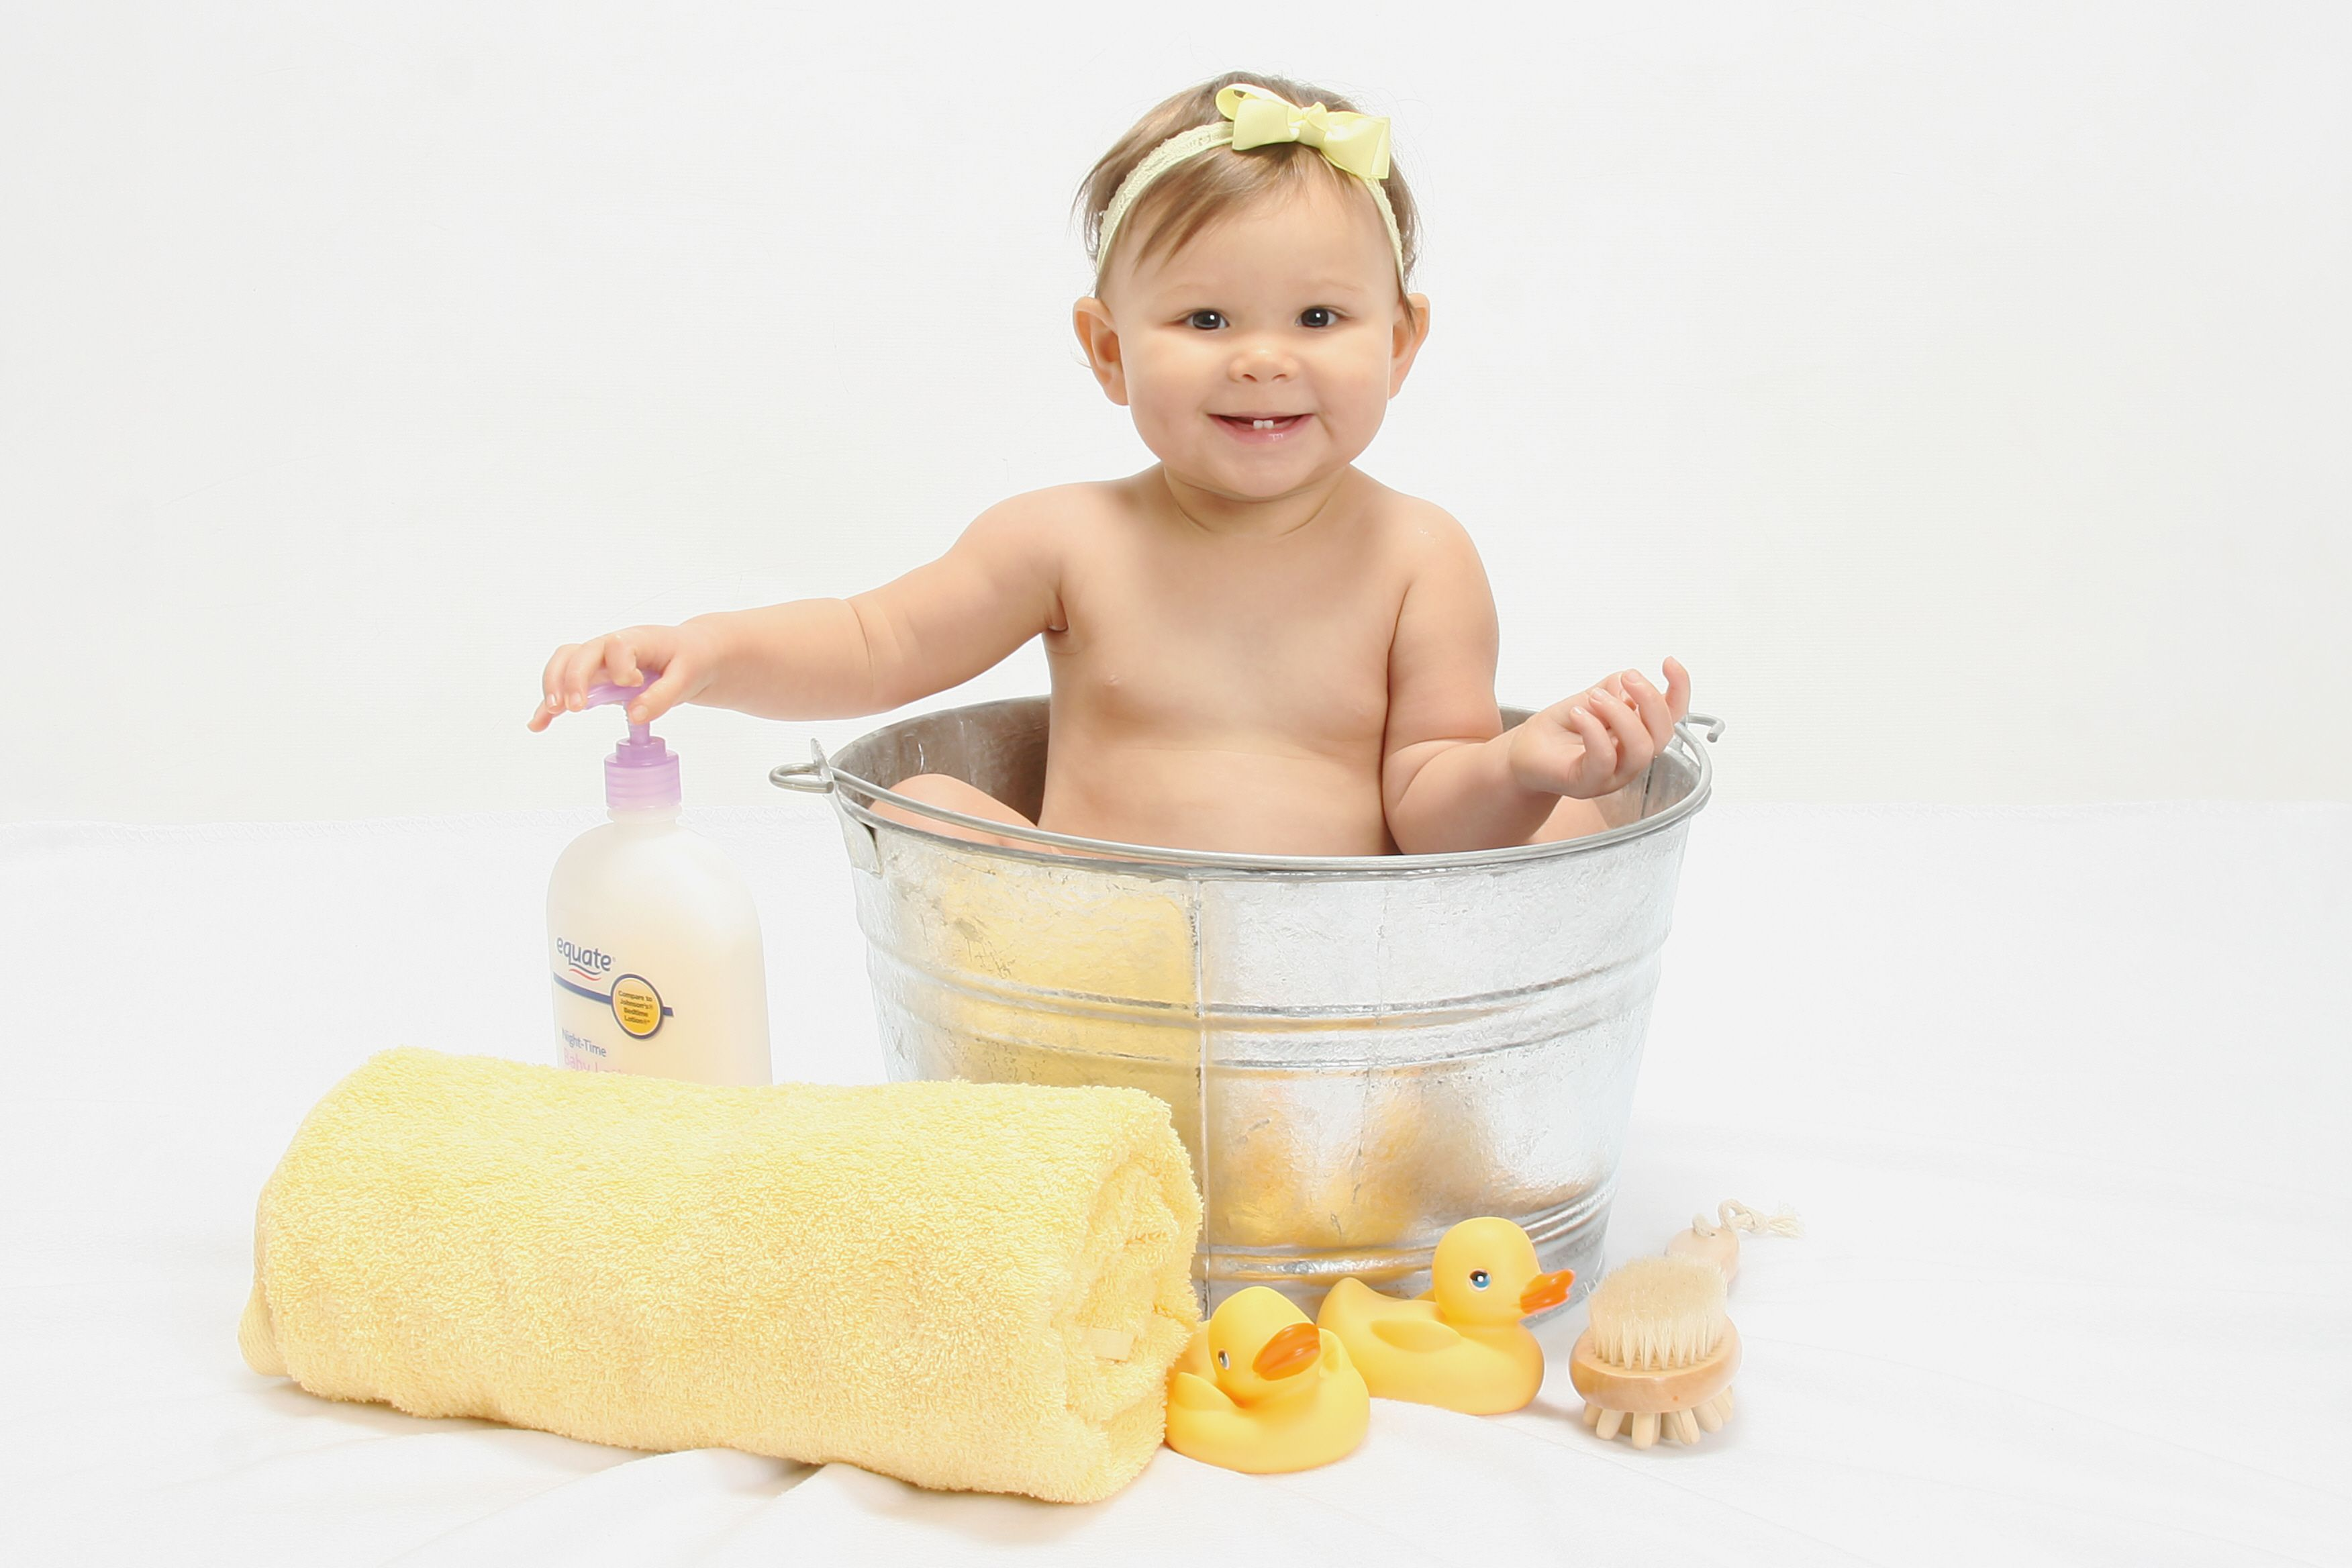 Bath Tub 10 Month Old Baby Pictures Baby Bath Baby Bath Tub Baby Pictures